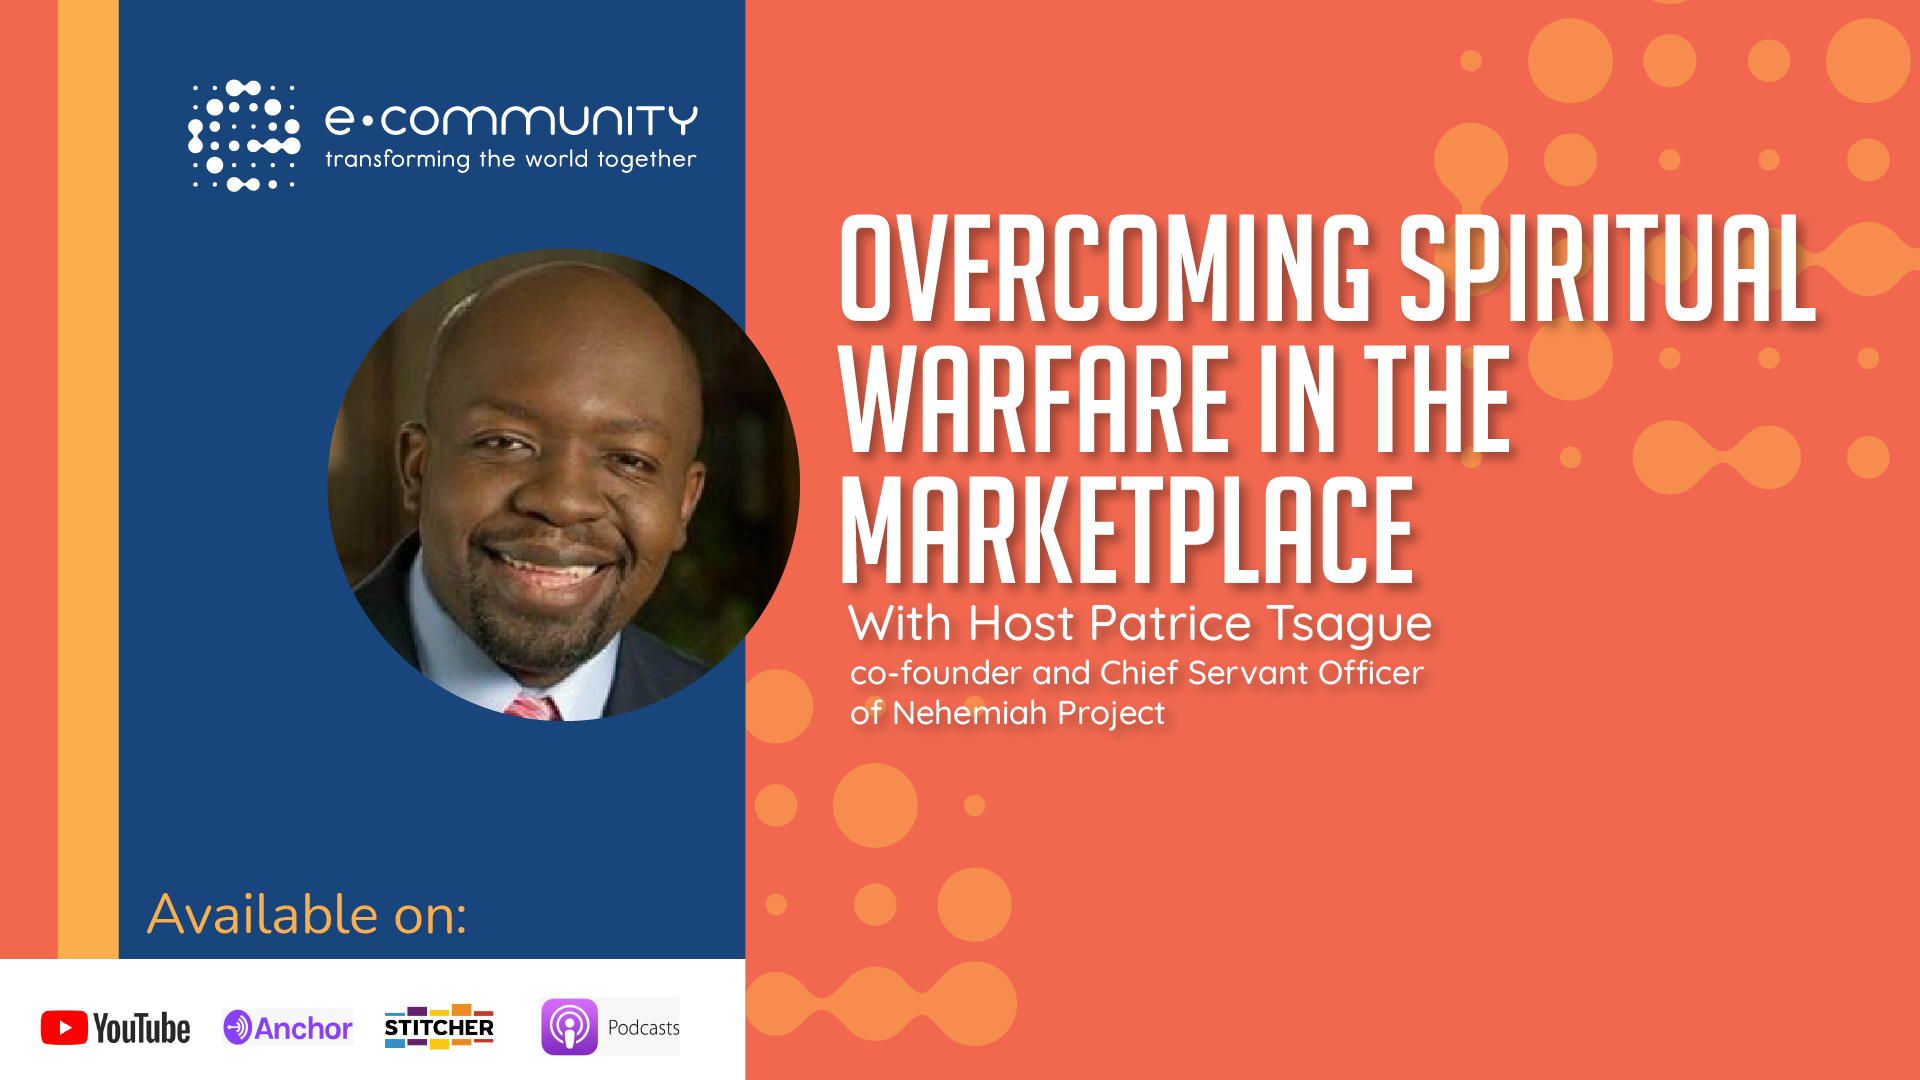 Overcoming Spiritual Warfare in the Marketplace